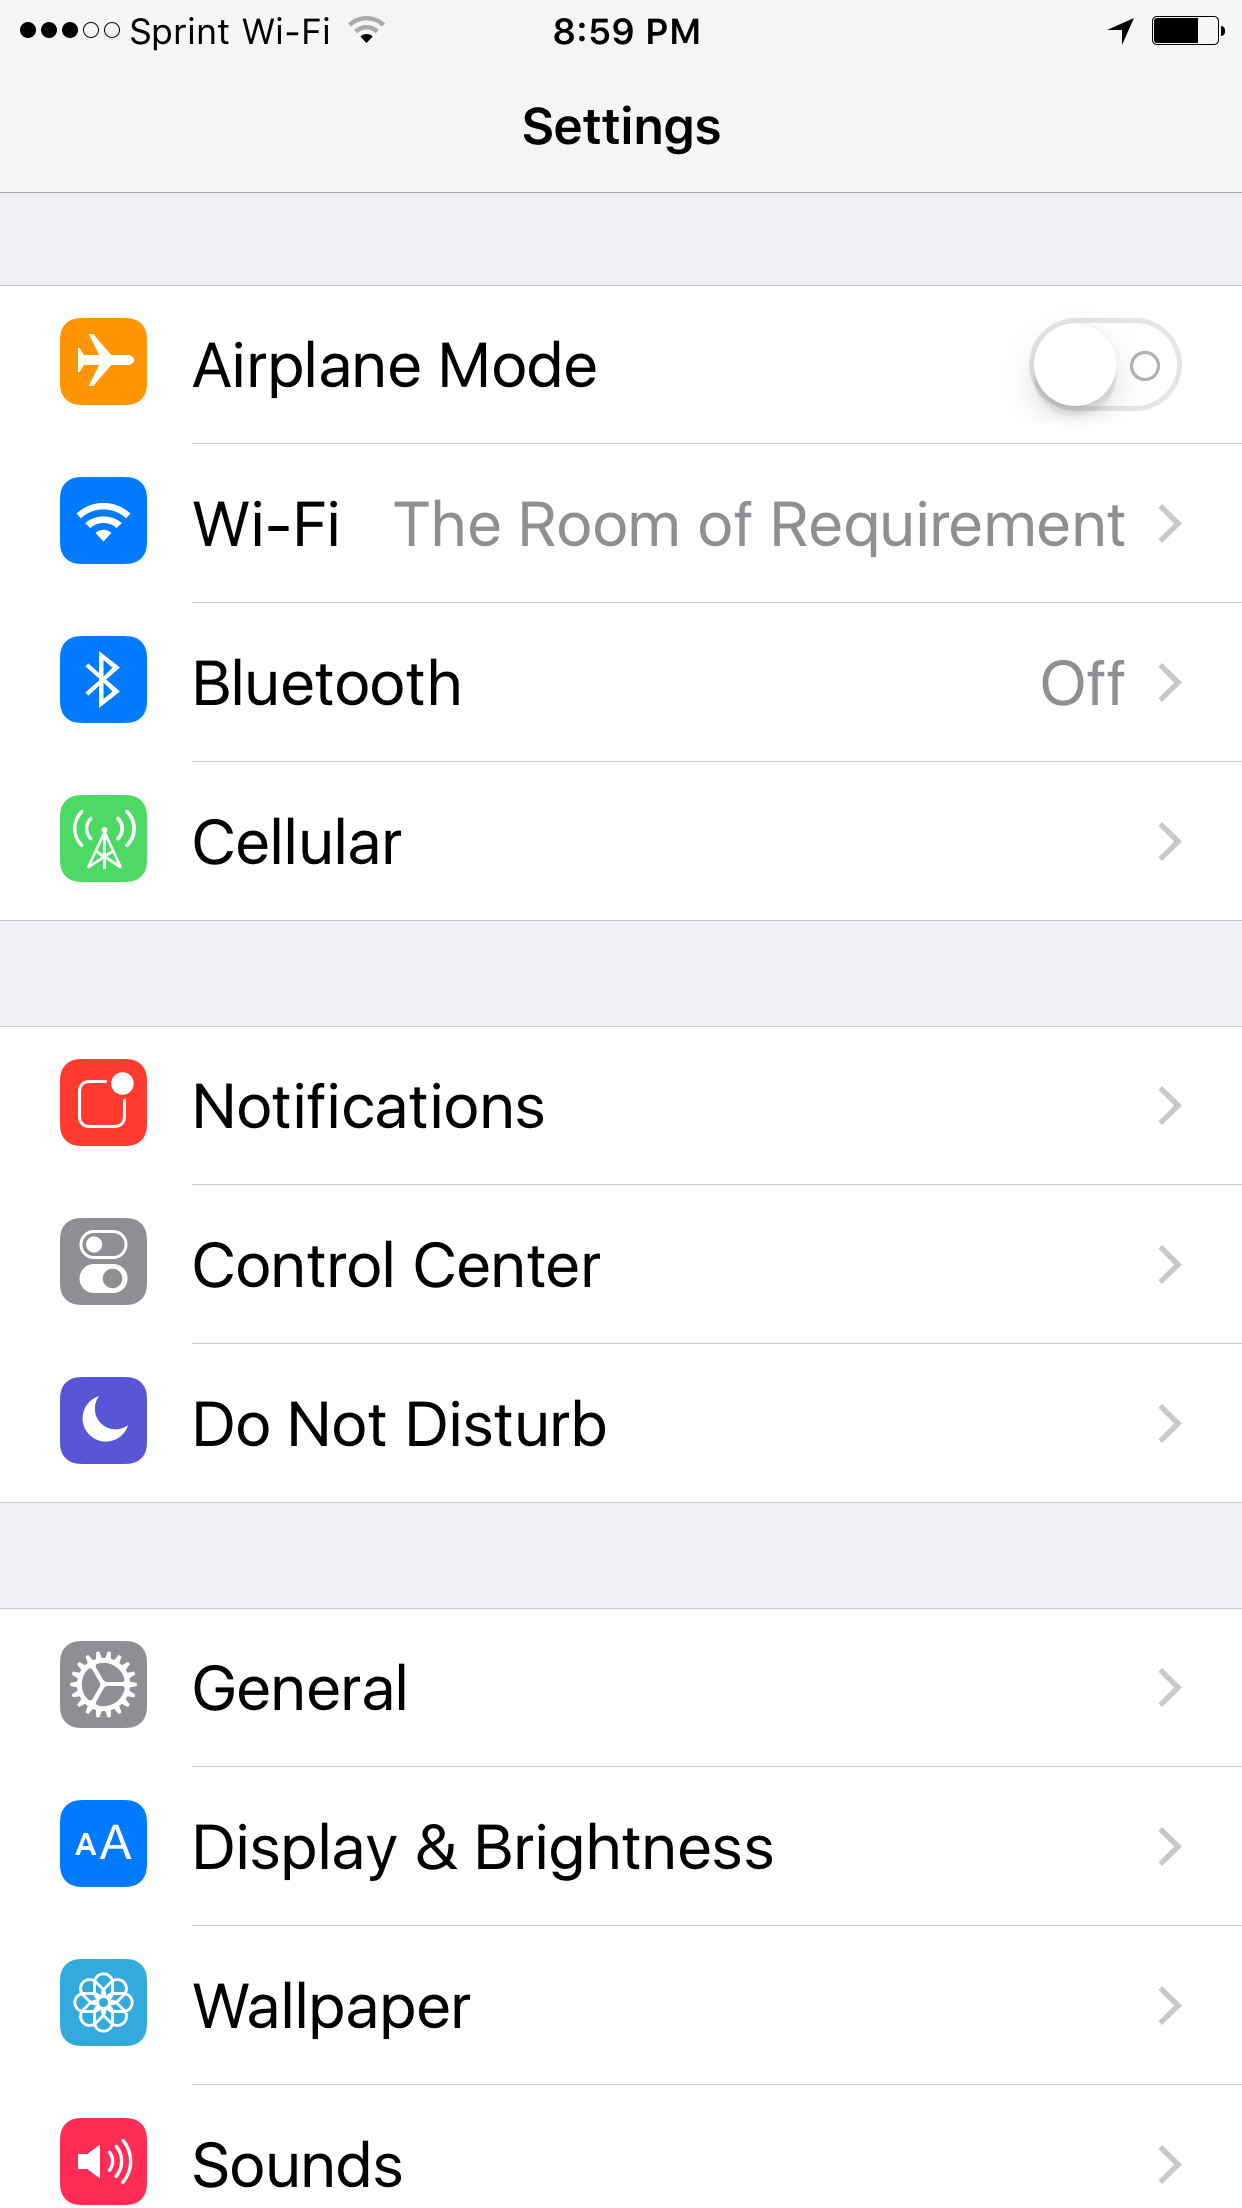 iOS settings screen